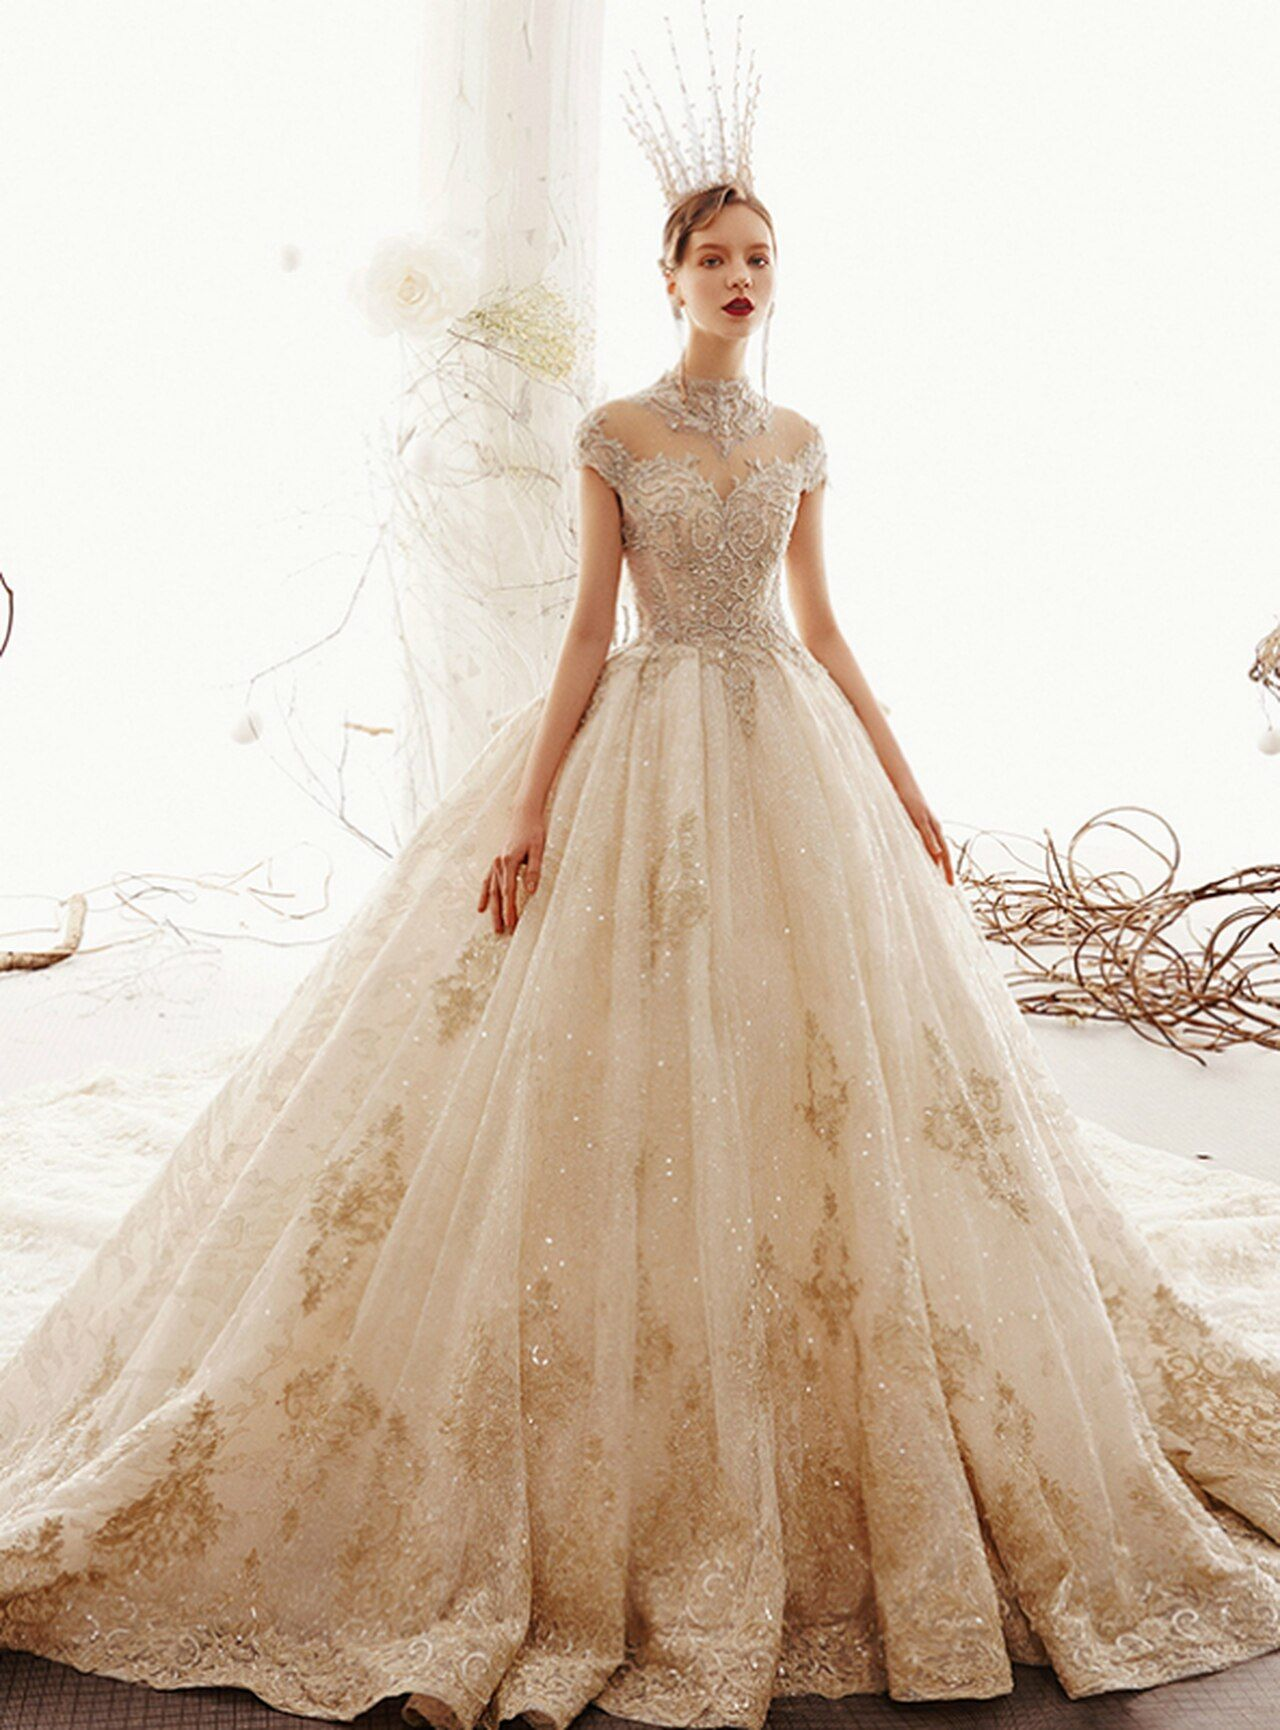 Champagne Ball Gown Tulle Appliques High Neck Cap Sleeve Wedding Dress With Long Train Wedding Dress Couture Ball Gowns Luxury Wedding Dress